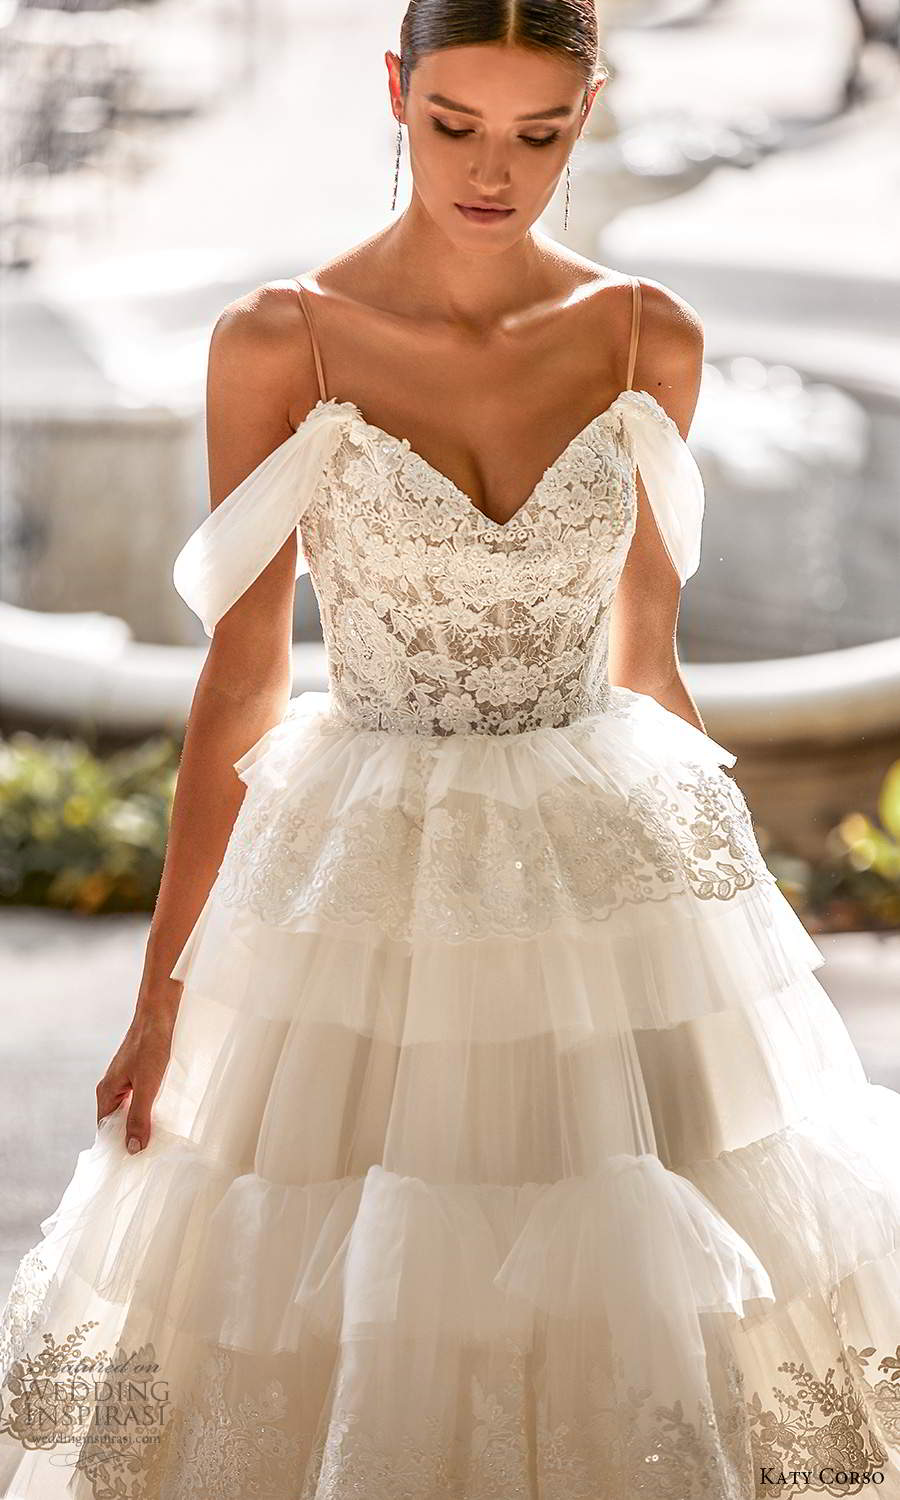 katy corso 2021 bridal off shoulder swag sleeves thin straps sweetheart neckline a line ball gown wedding dress tiered skirt chapel train (4) zv